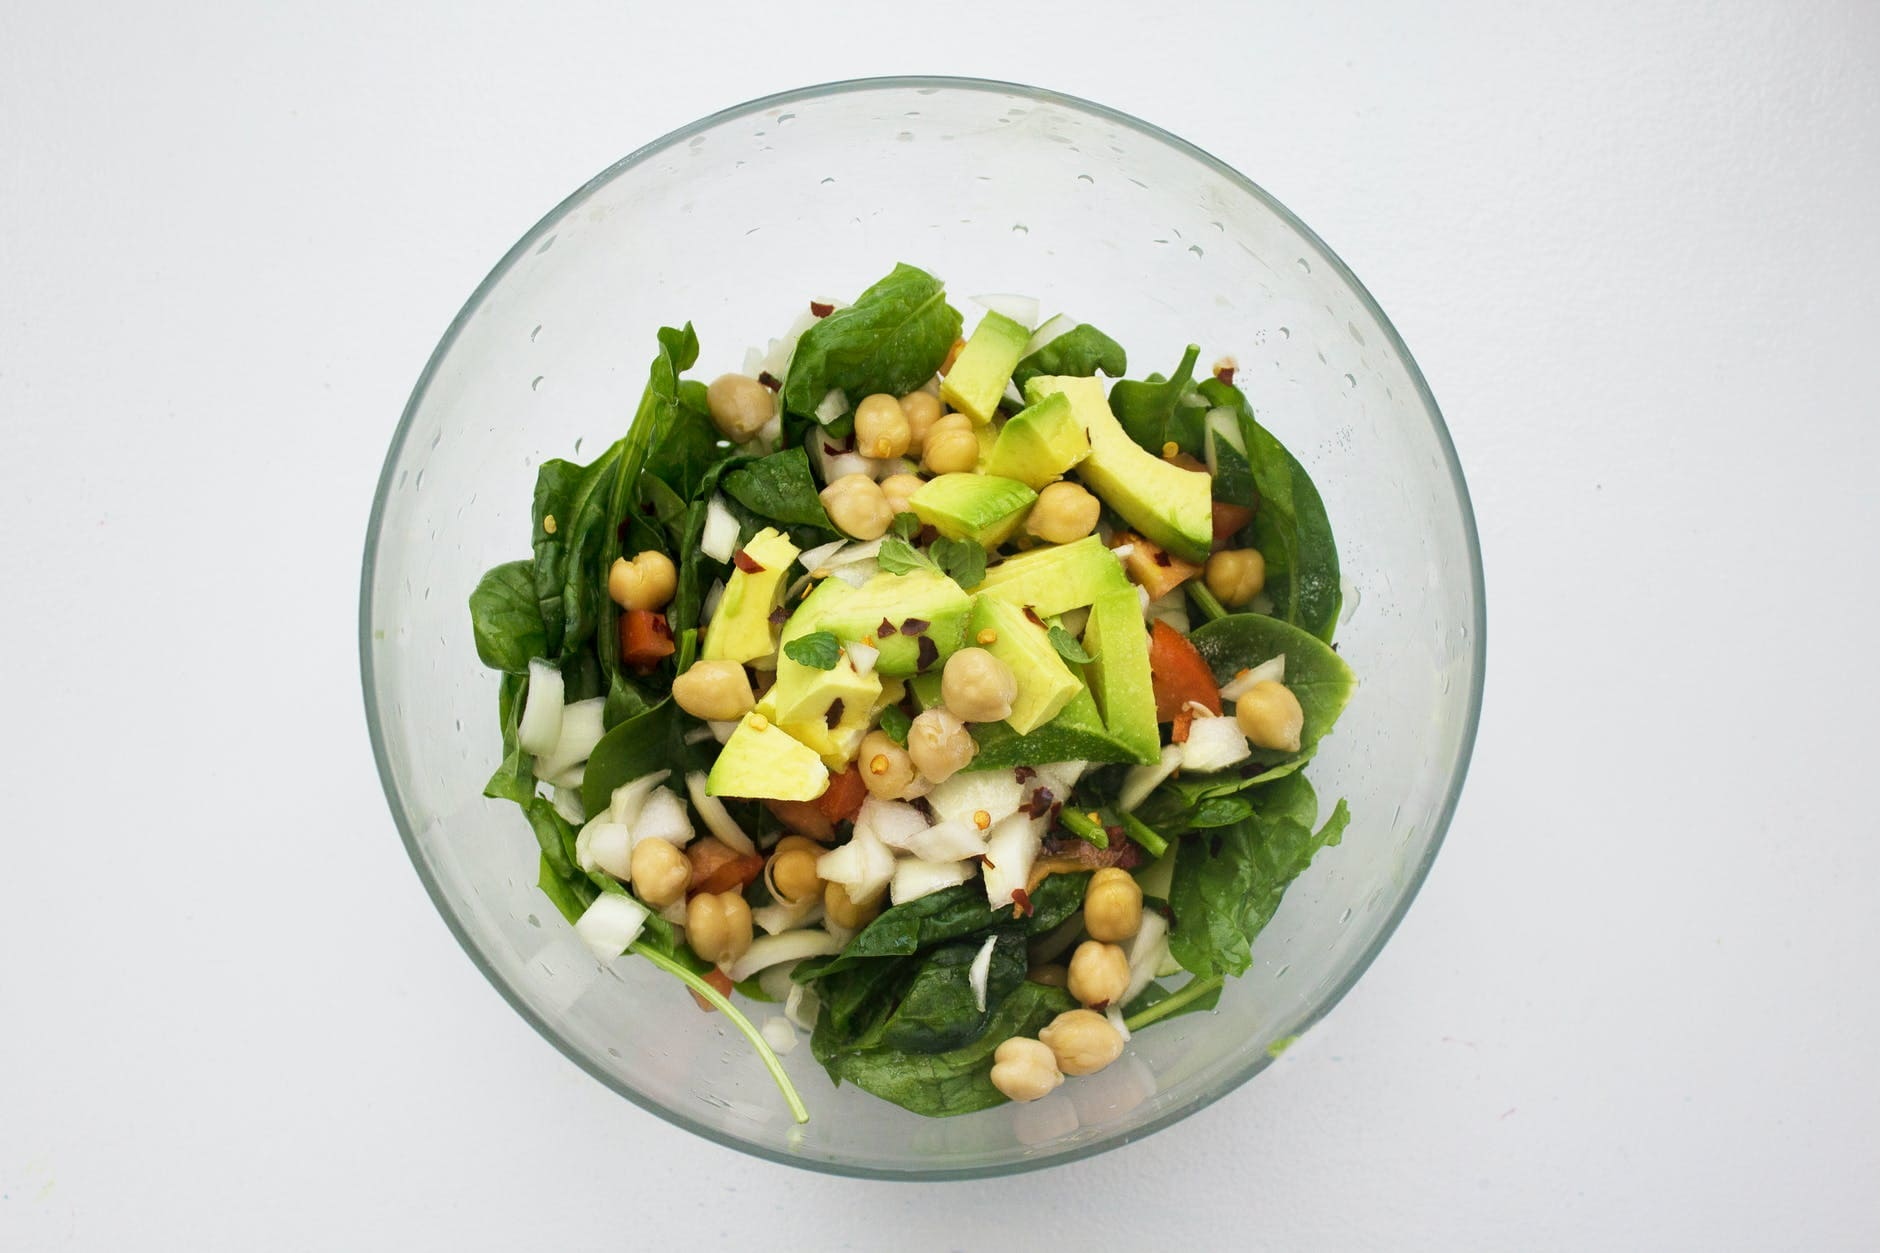 The way the winter salad works